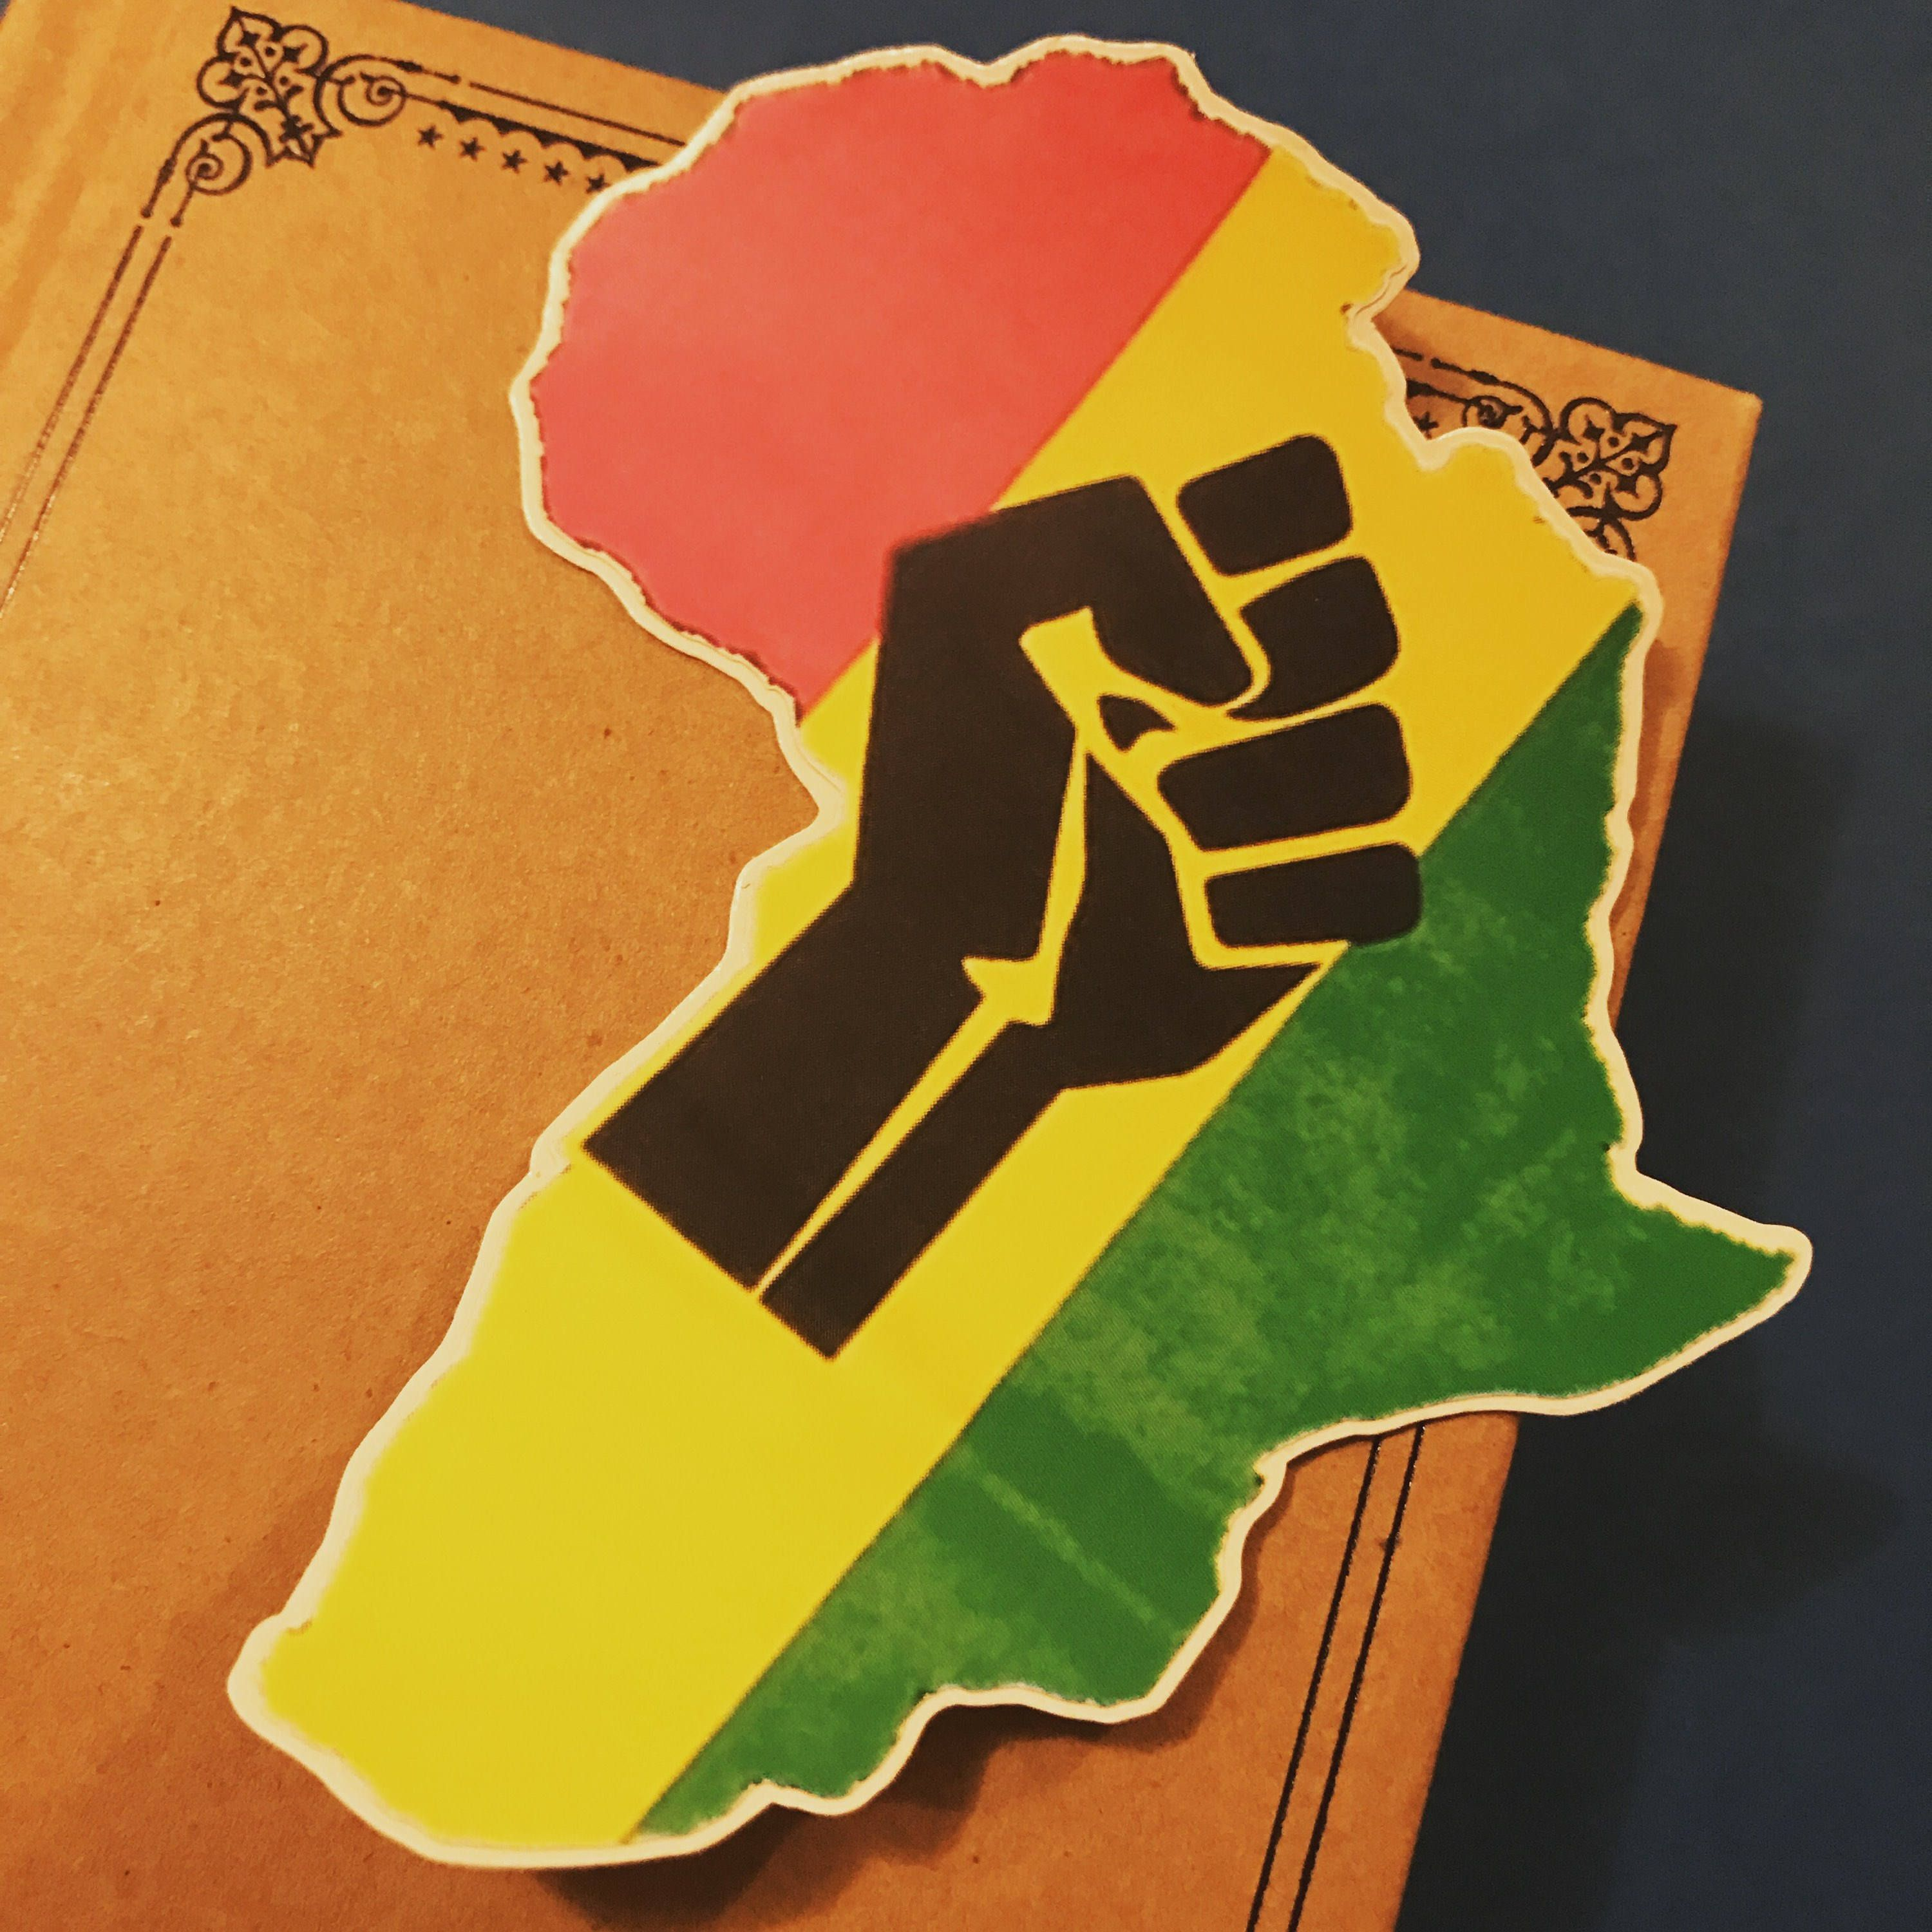 Excited to share the latest addition to my etsy shop raised fist africa vinyl